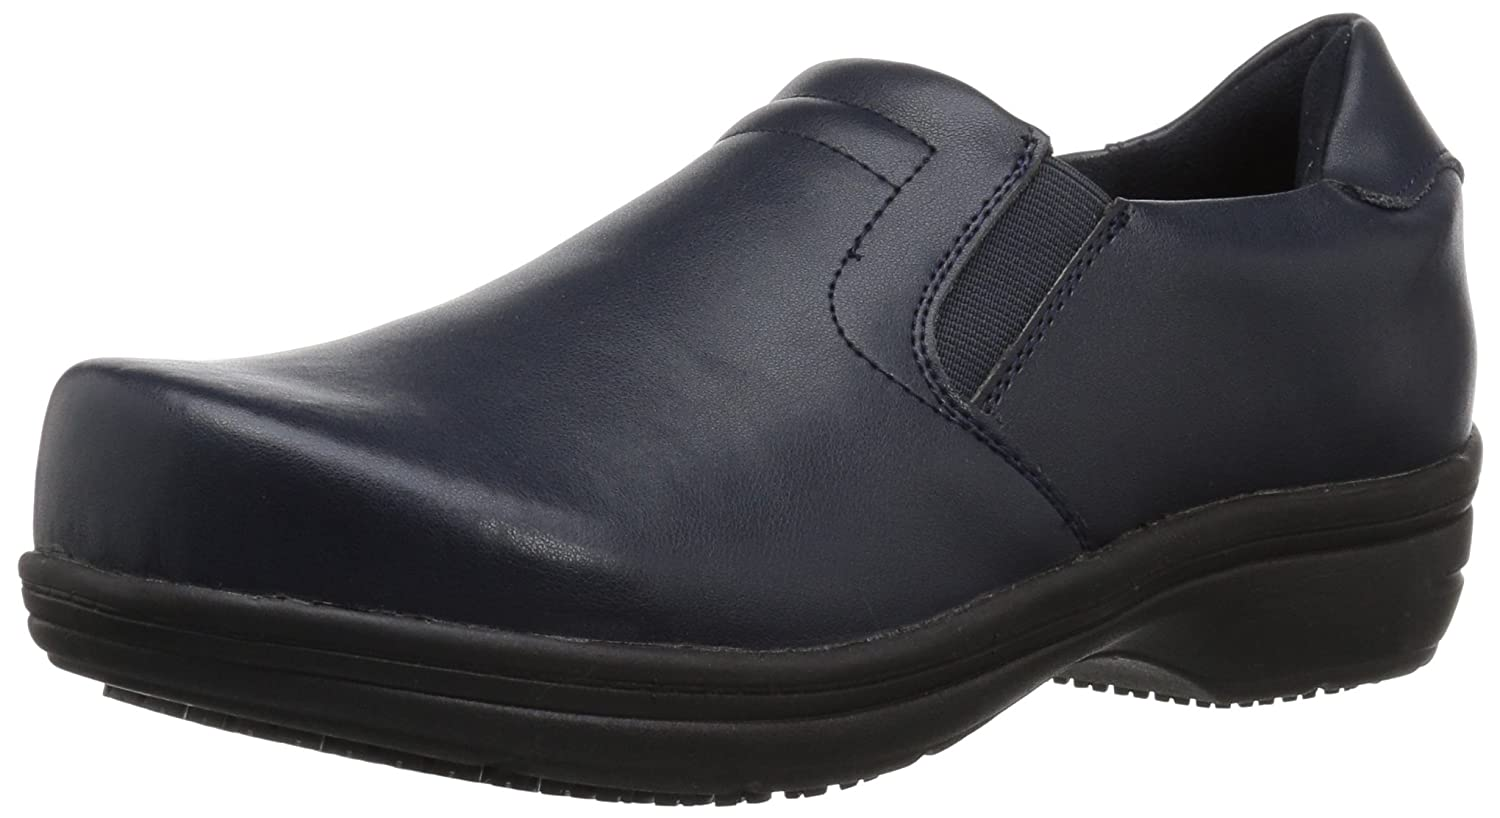 Easy Works Women's Bind Health Care Professional Shoe B075M5PZGY 11 B(M) US|Navy